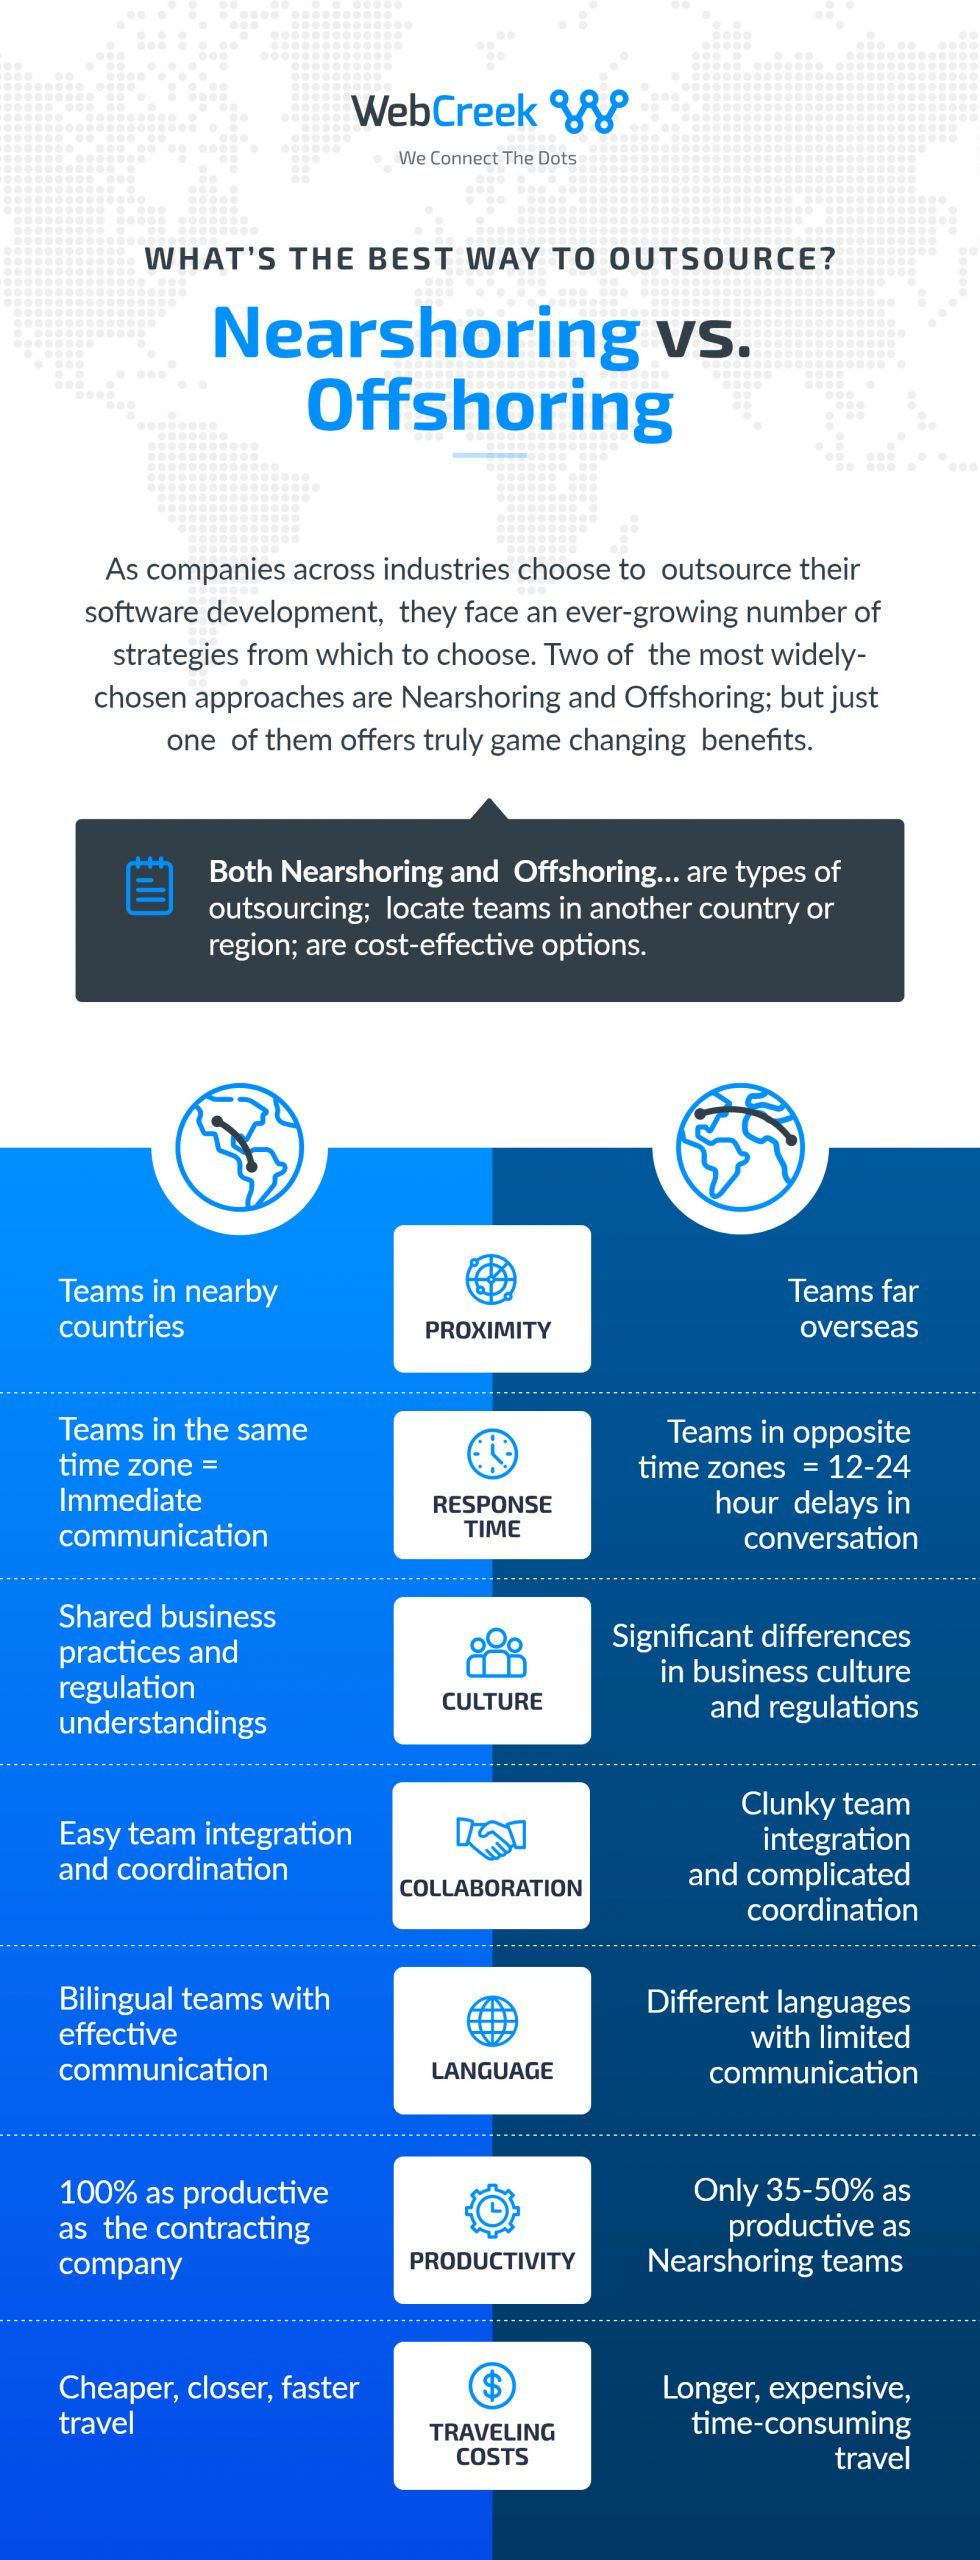 offshoring vs nearshoring infographic - what is the best way to outsource?